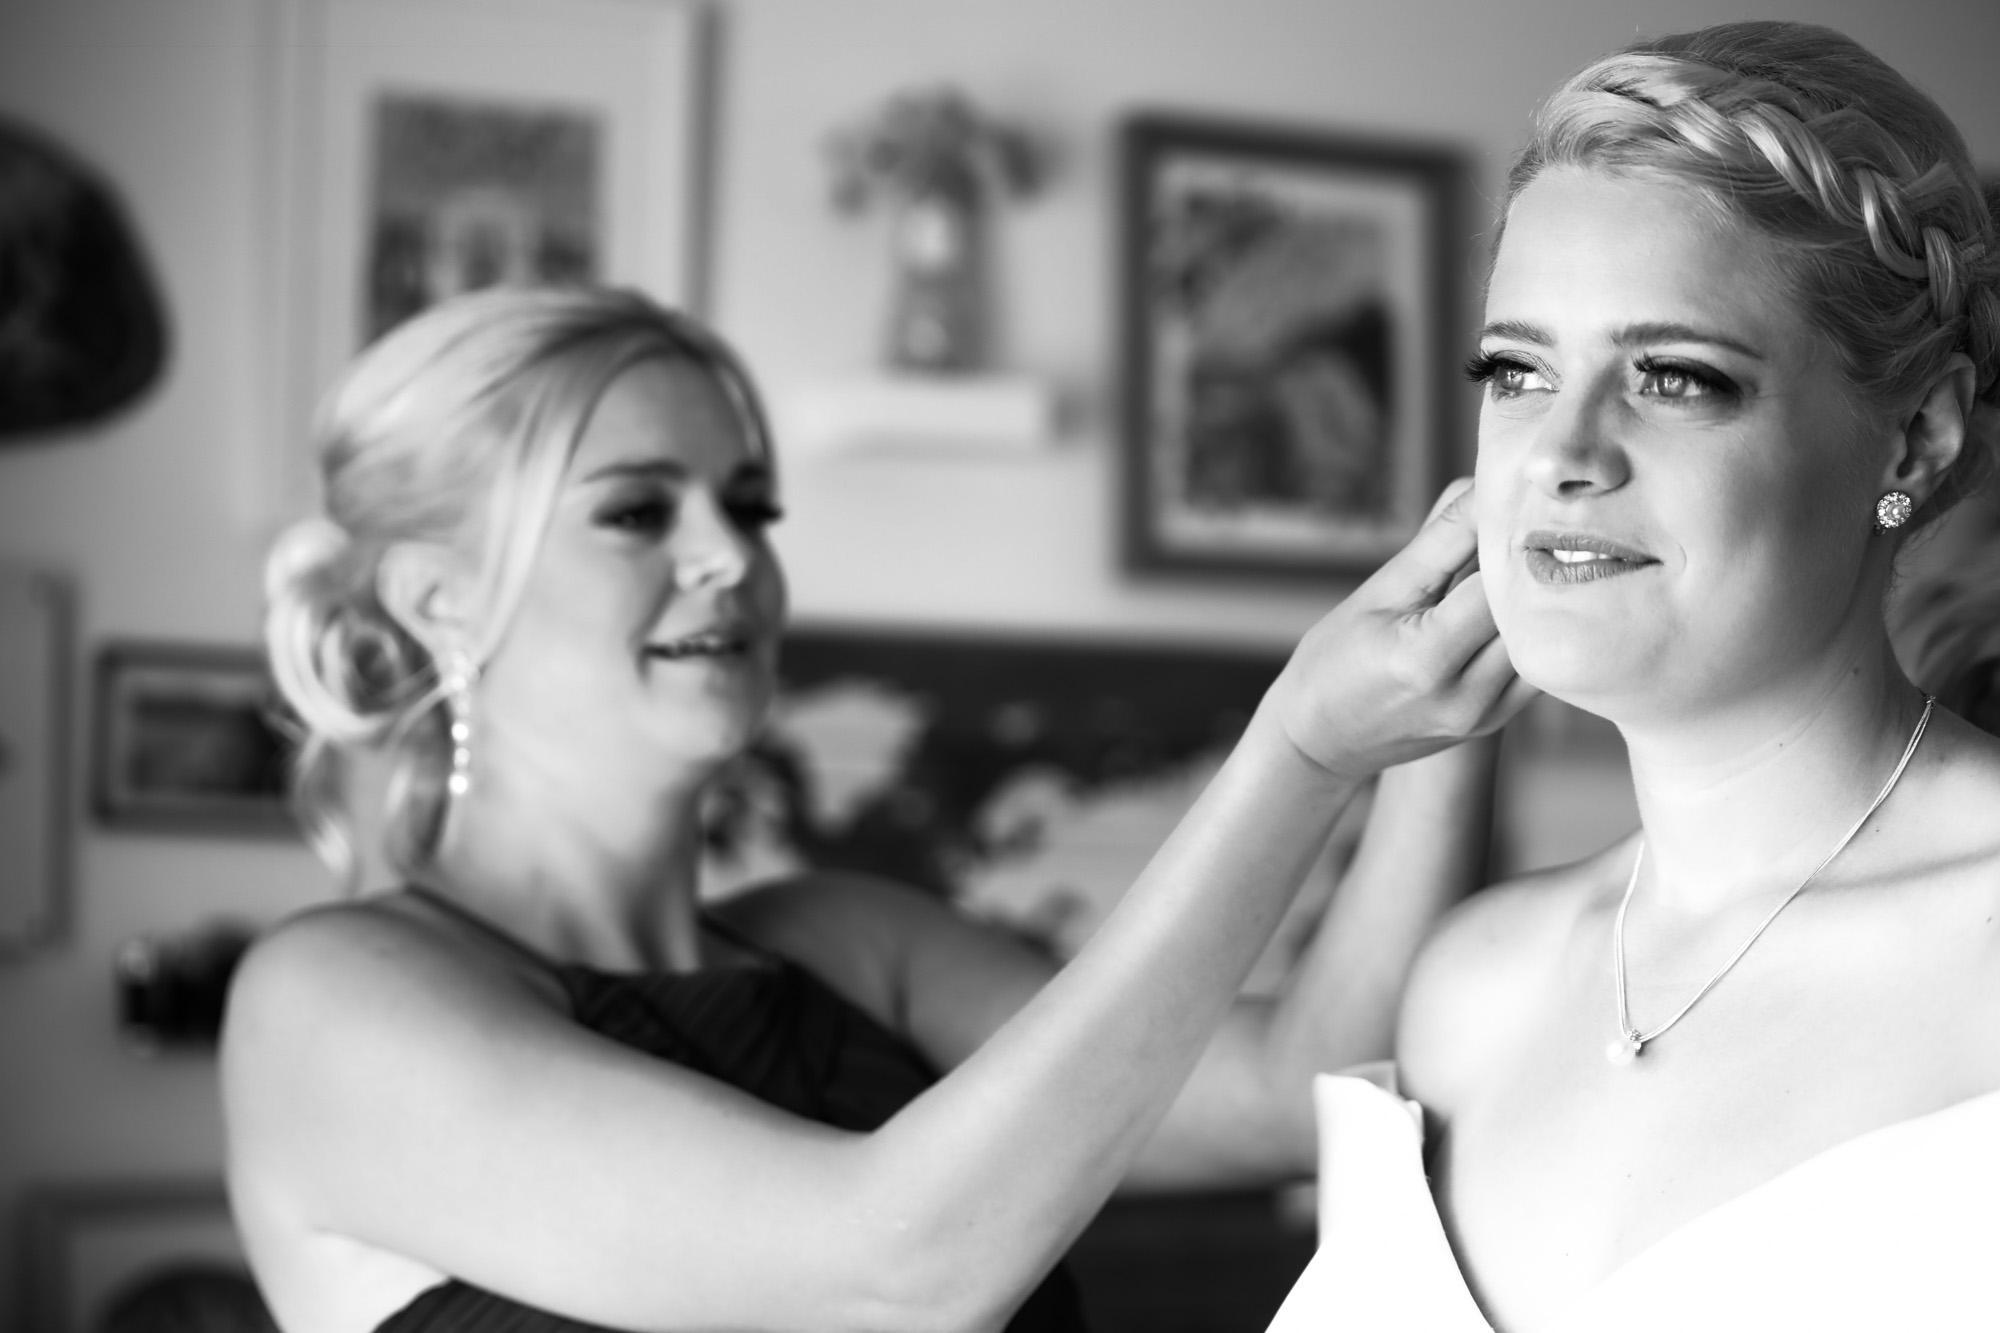 Calgary wedding photographer, the bride and groom getting ready for their wedding ceremony